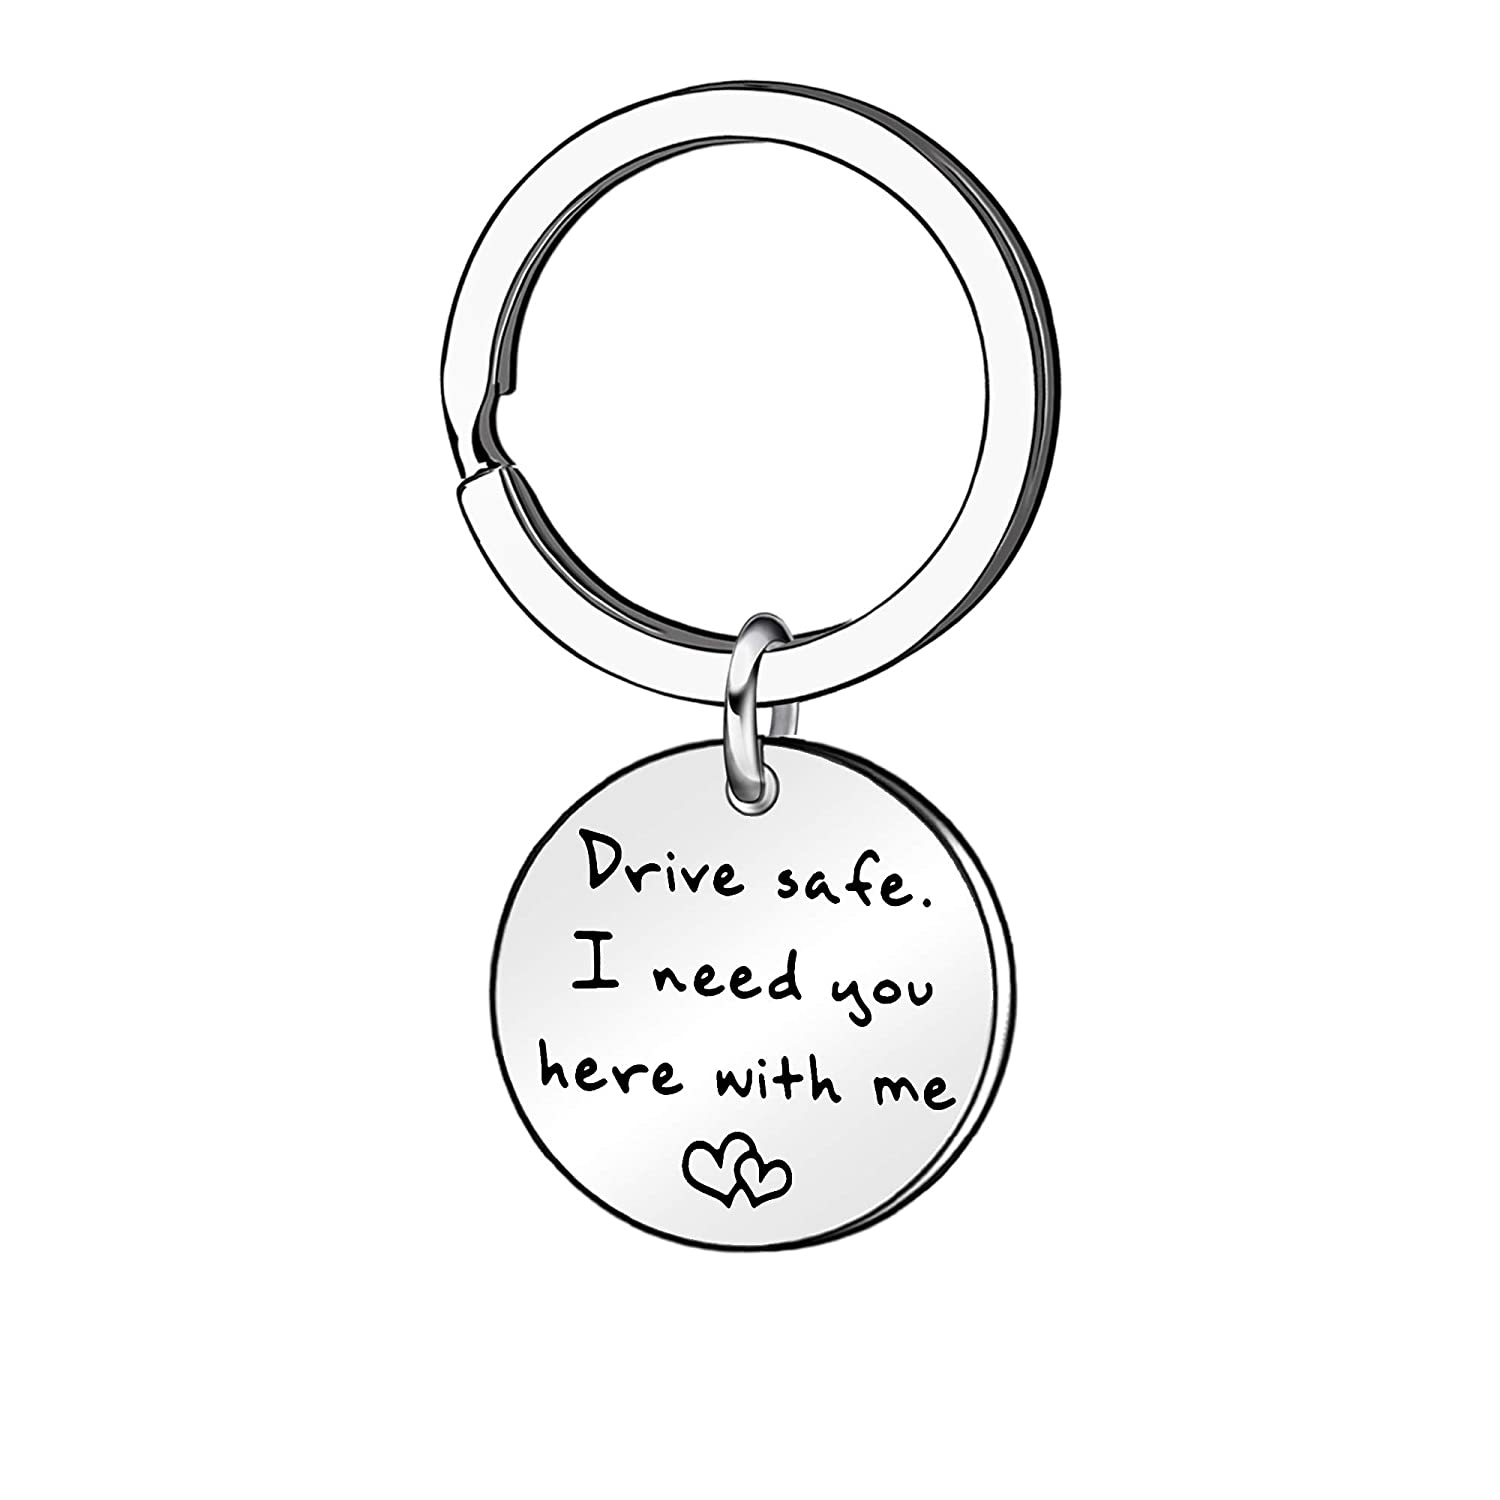 Drive Safe I Need You Here with Me Car Keychain Key Chain Family Gift for Couple Husband Wife Boyfriend Girlfriend Dad Mum